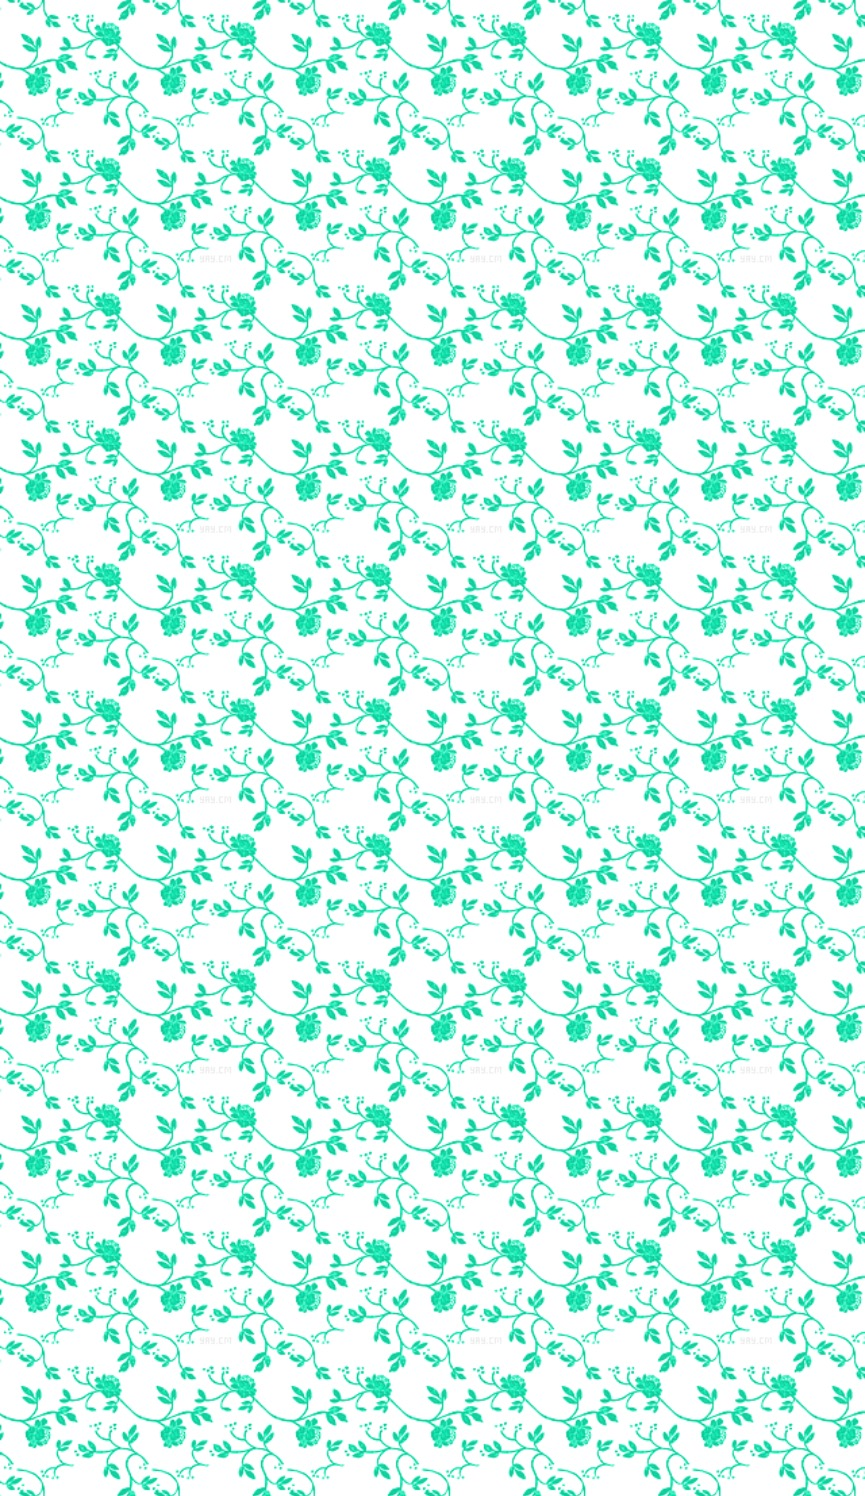 teal and white floral wallpaper